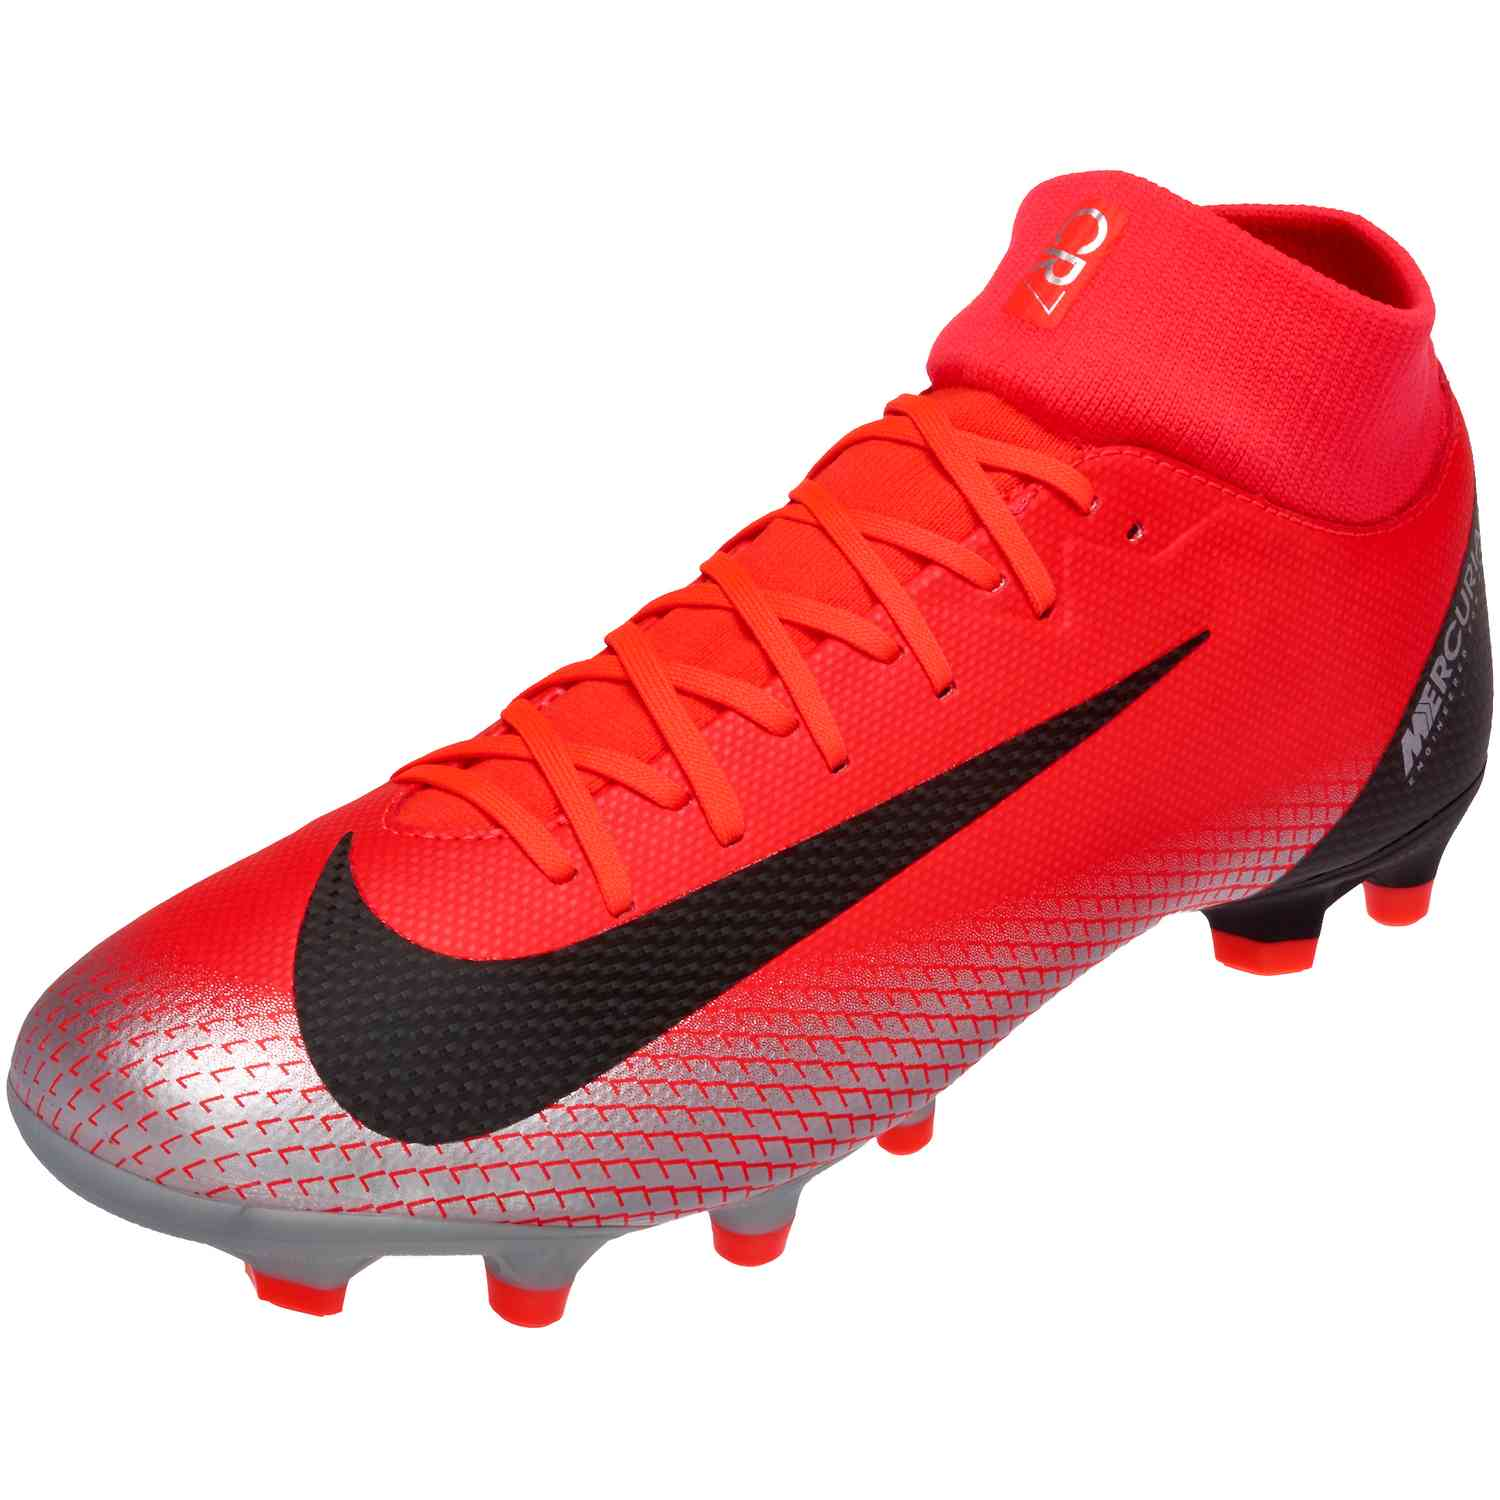 meet d94c5 c2ad1 Nike Mercurial Superfly 6 Academy FG – CR7 – Bright Crimson Black Chrome Dark  Grey